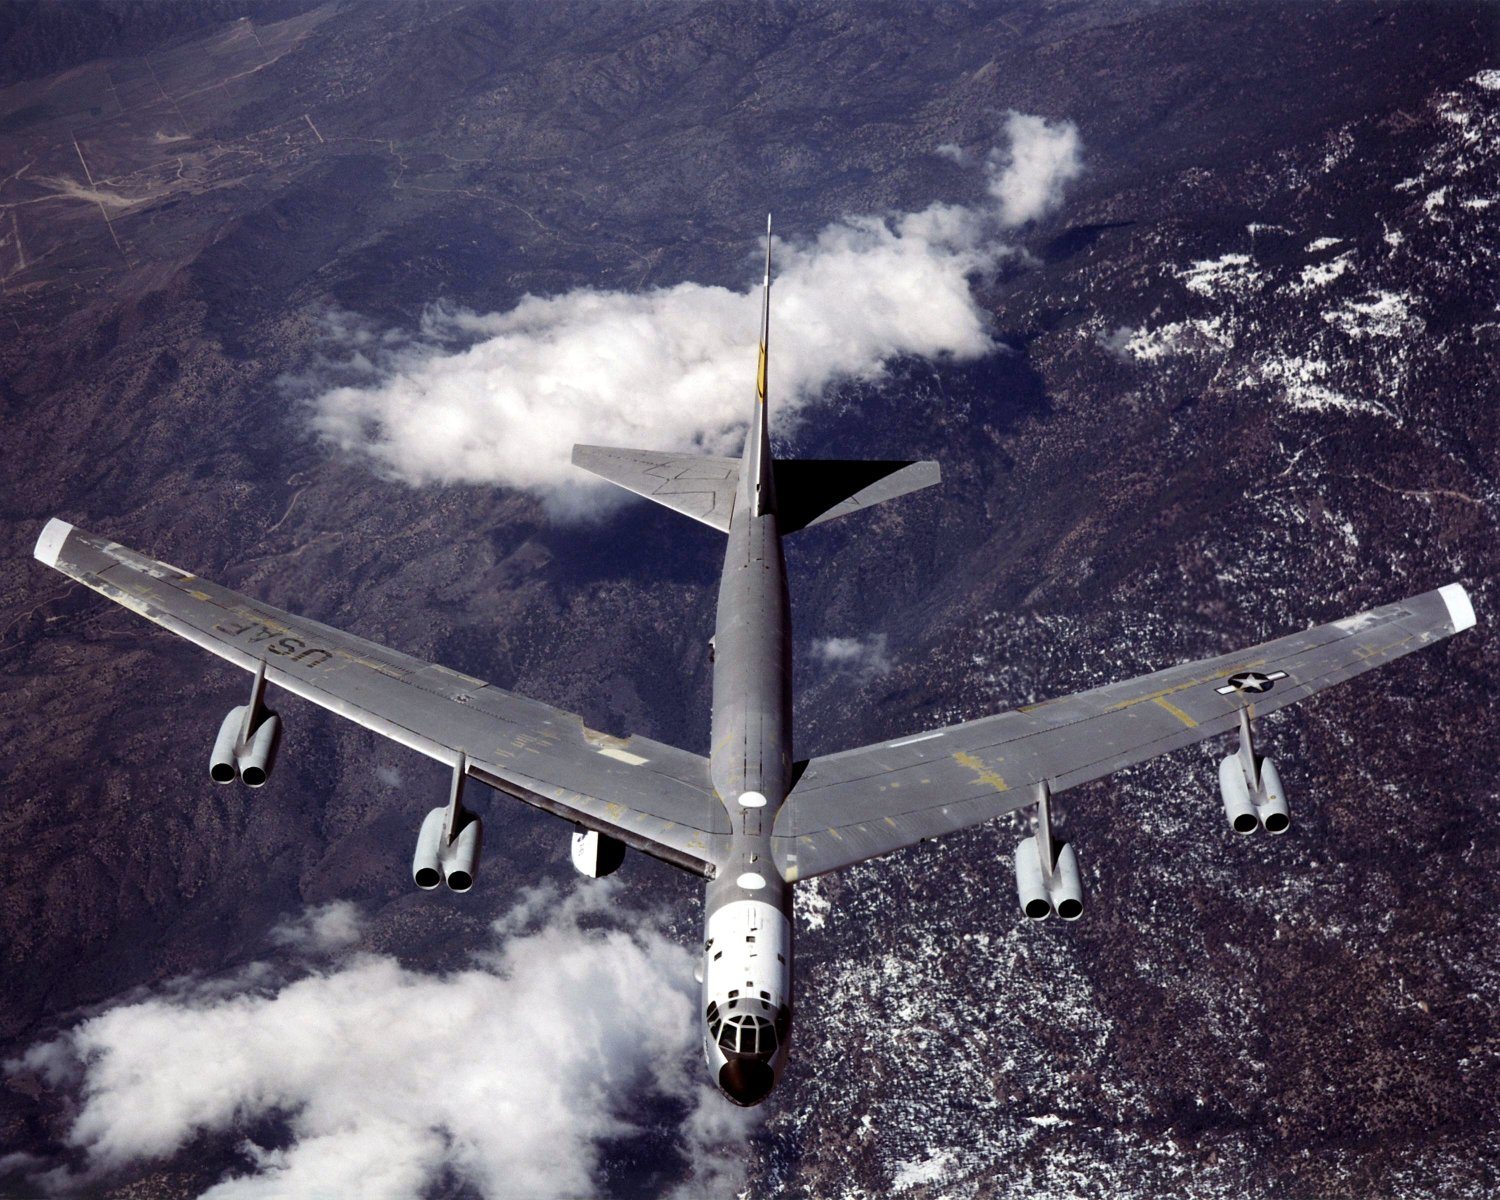 B-52 MOTHERSHIP (TAIL NUMBER 008) IN FLIGHT- 8X10 NASA PHOTO (EP-062)